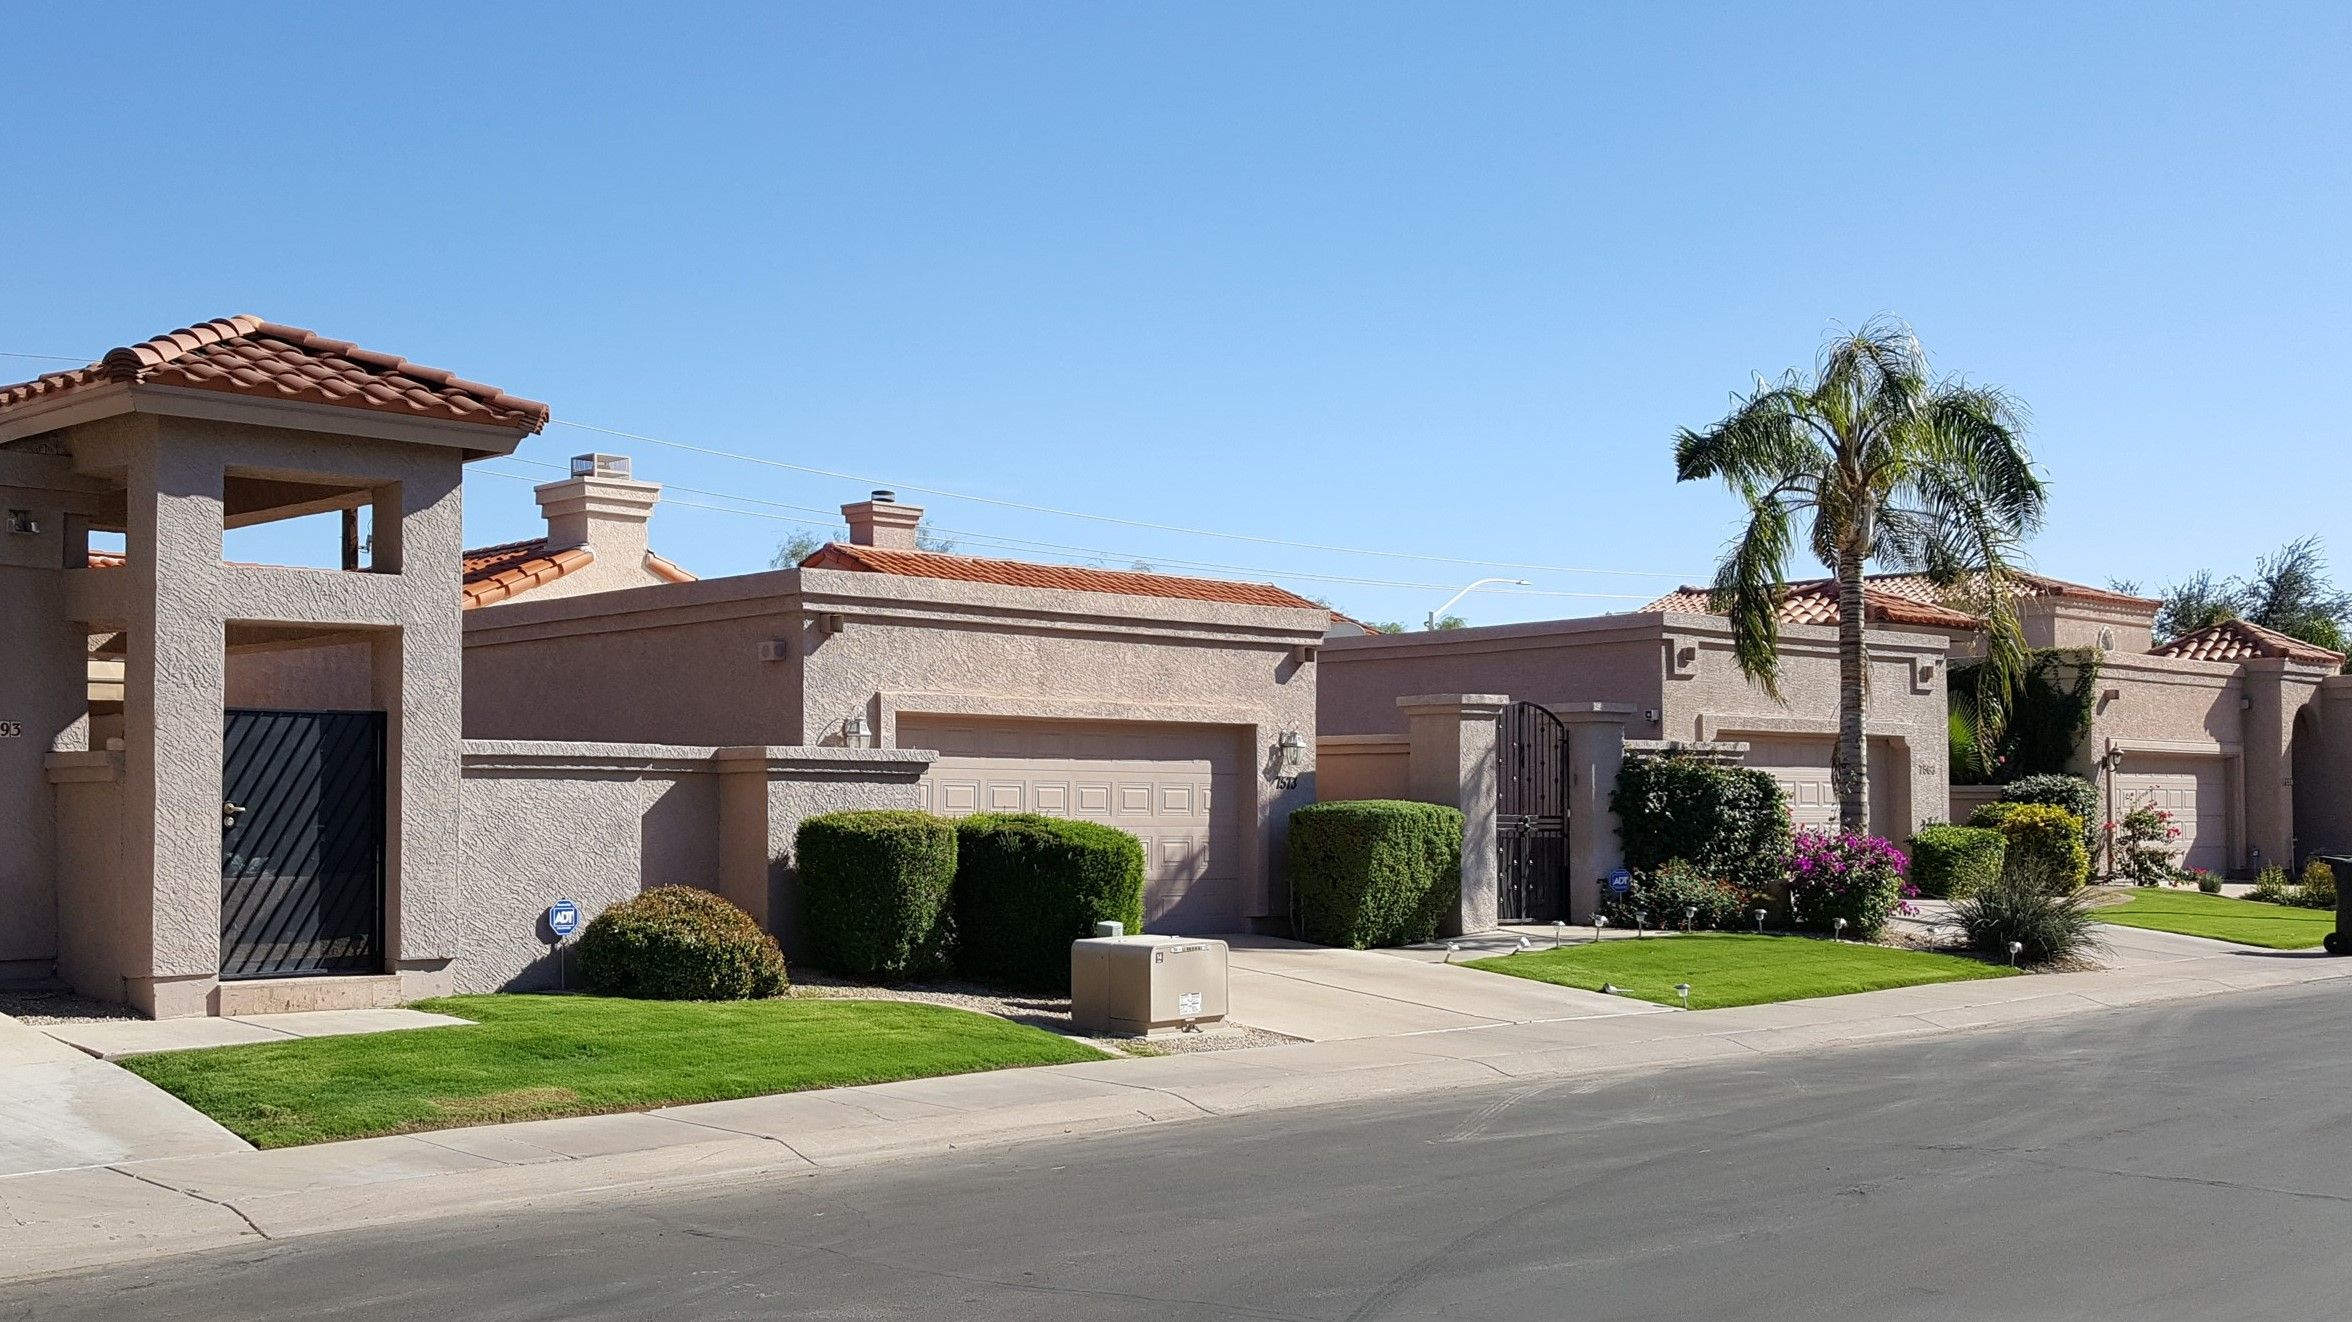 Here is the New Image Of Patio Homes for Sale Tempe Az